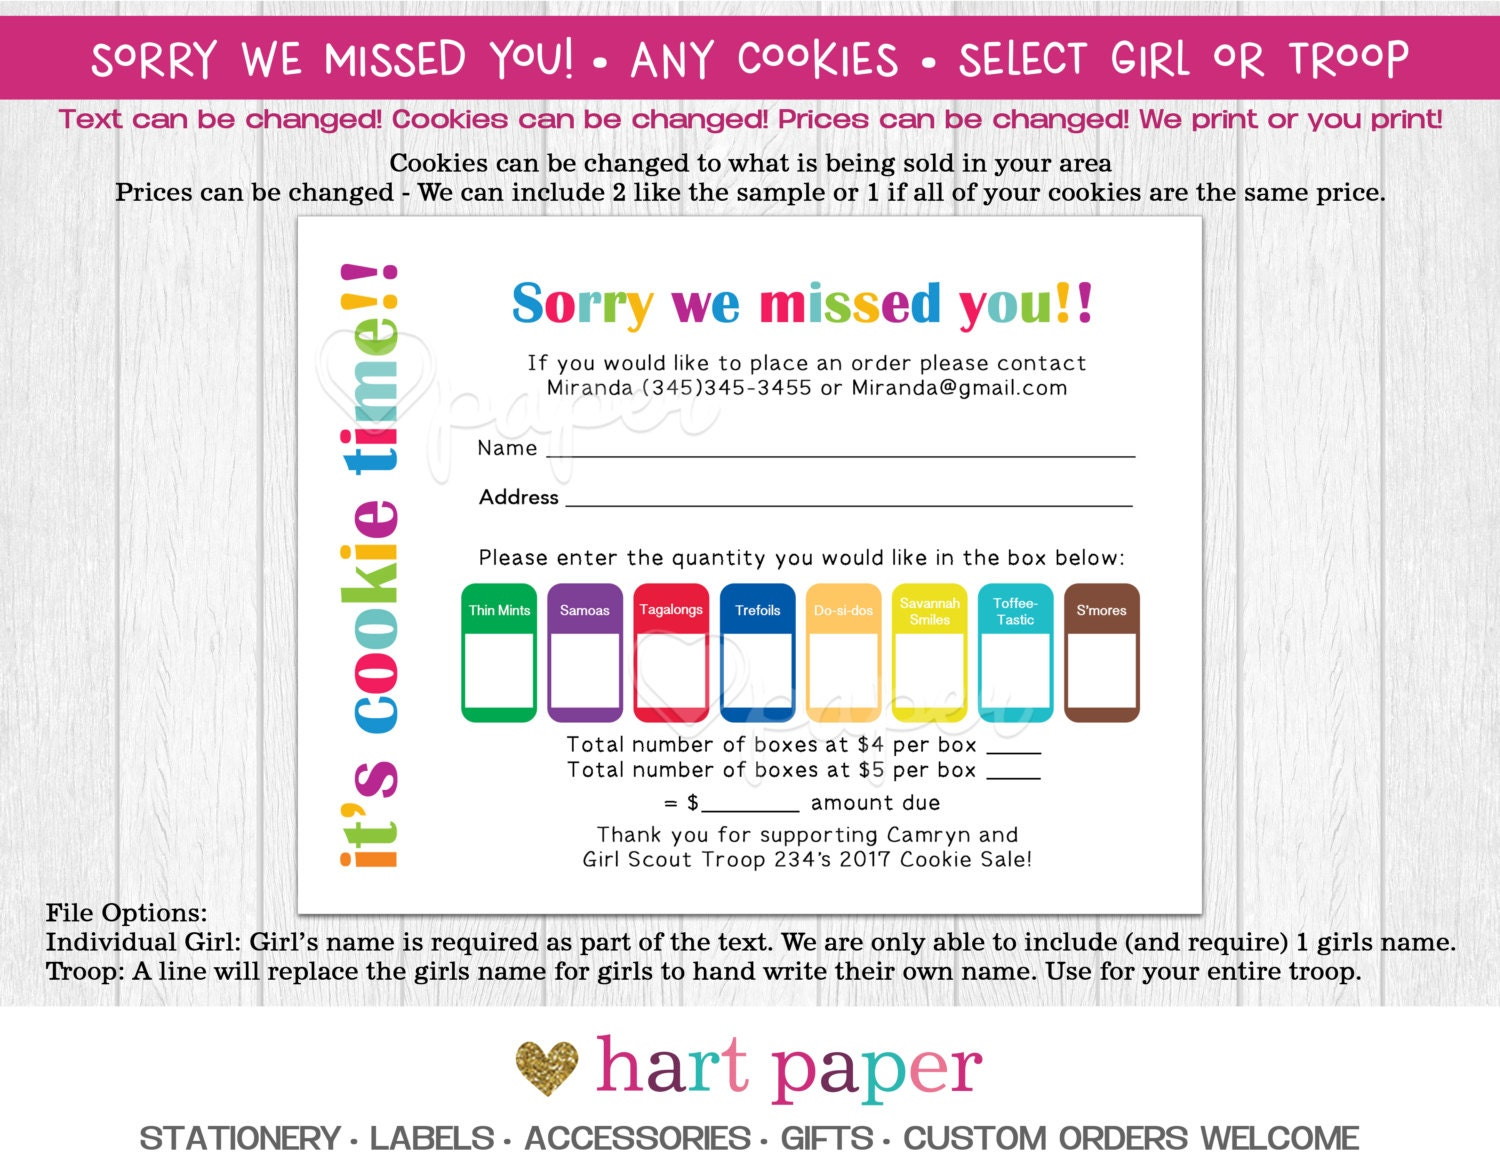 sorry we missed you girl scout troop cookie order printed